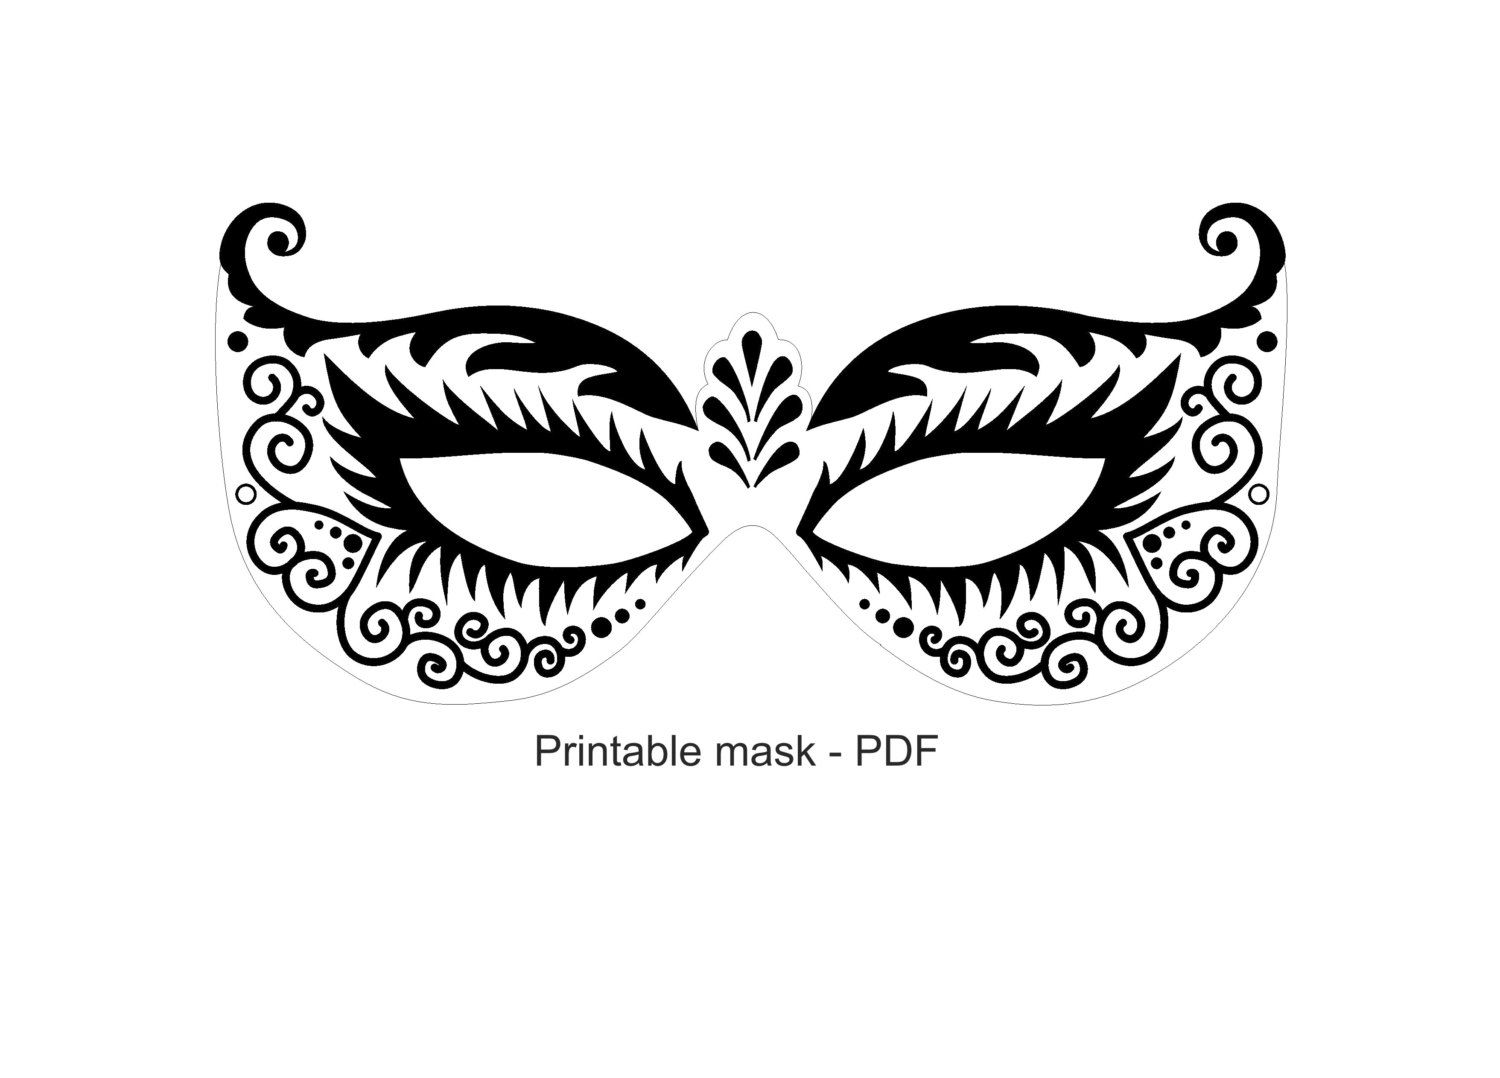 Juicy image for printable masquerade masks